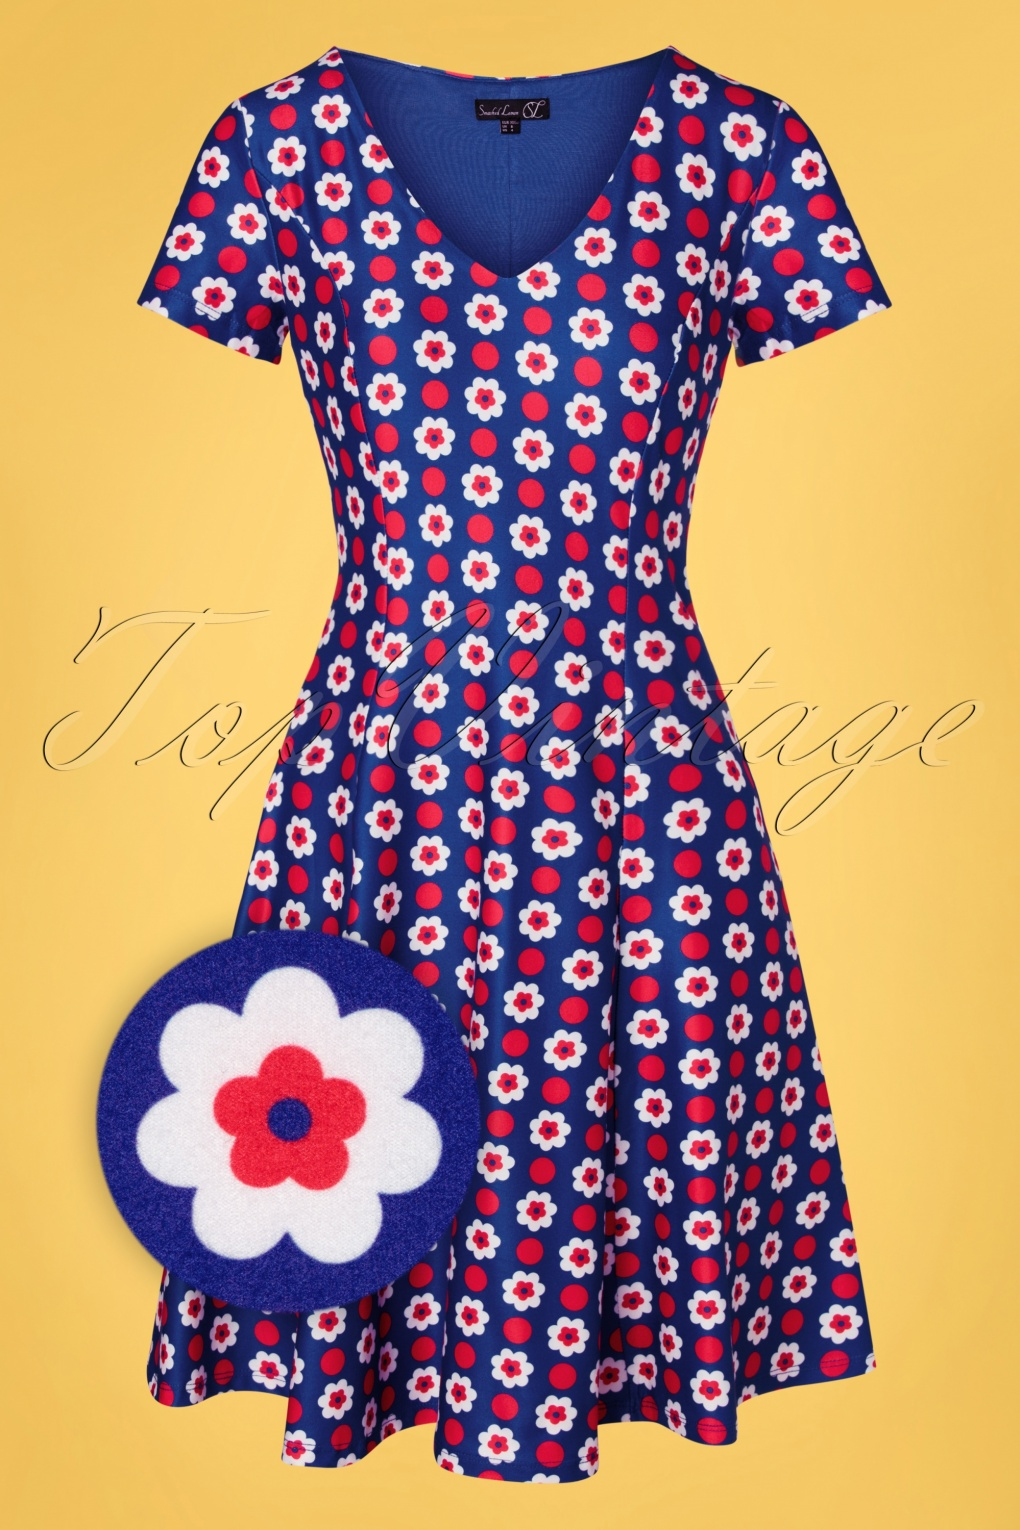 60s Dresses | 1960s Dresses Mod, Mini, Hippie 60s Maura Floral Dress in Royal Blue £61.45 AT vintagedancer.com